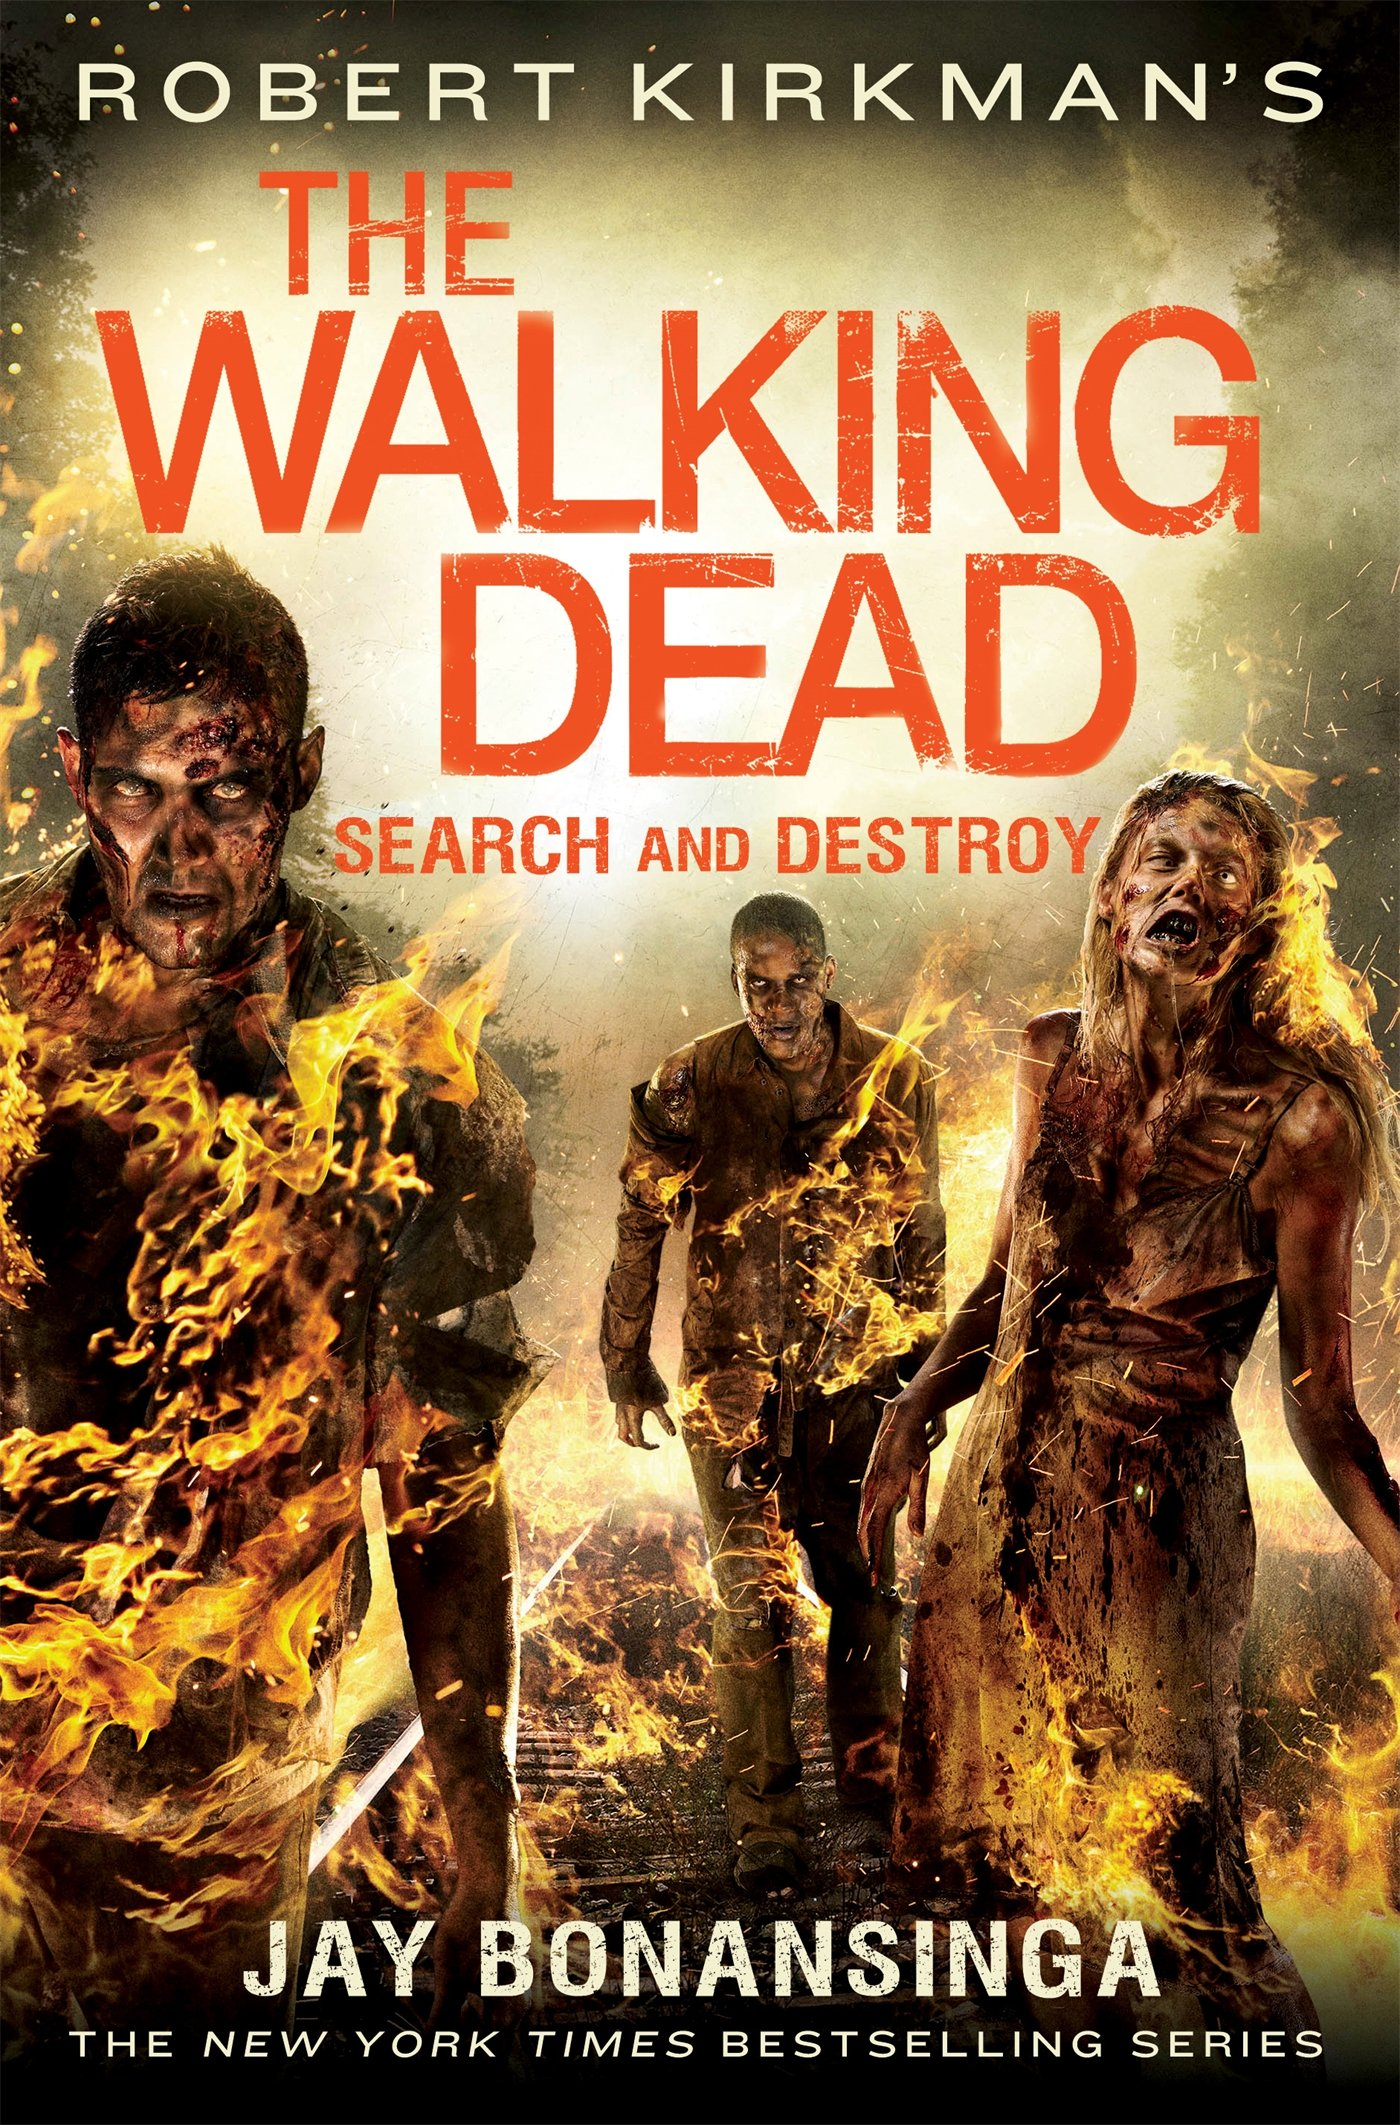 Image for Robert Kirkman's The Walking Dead: Search and Destroy (The Walking Dead Series)